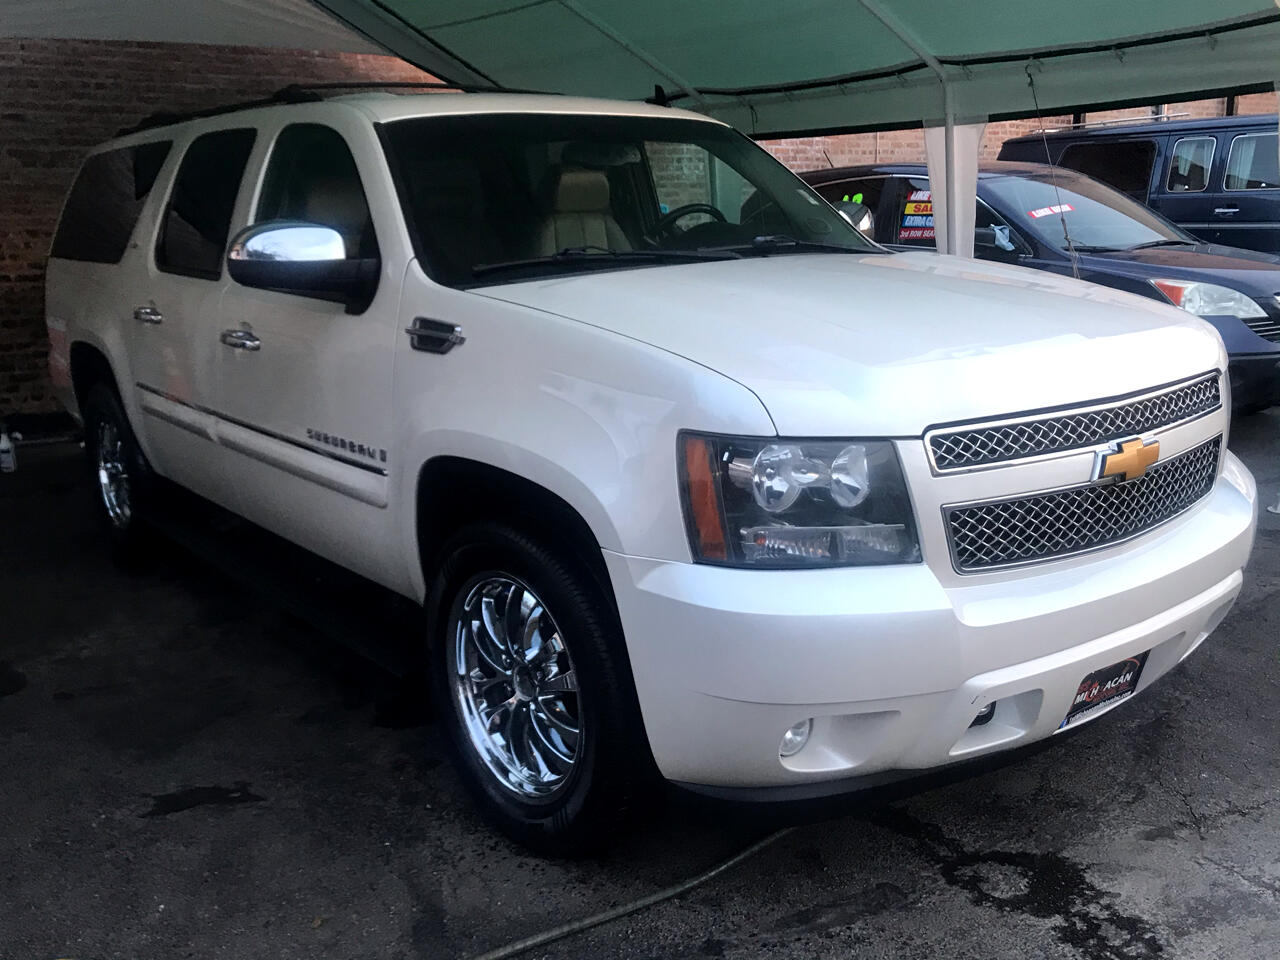 used cars for sale chicago il 60632 1st michoacan motors inc chicago il 60632 1st michoacan motors inc